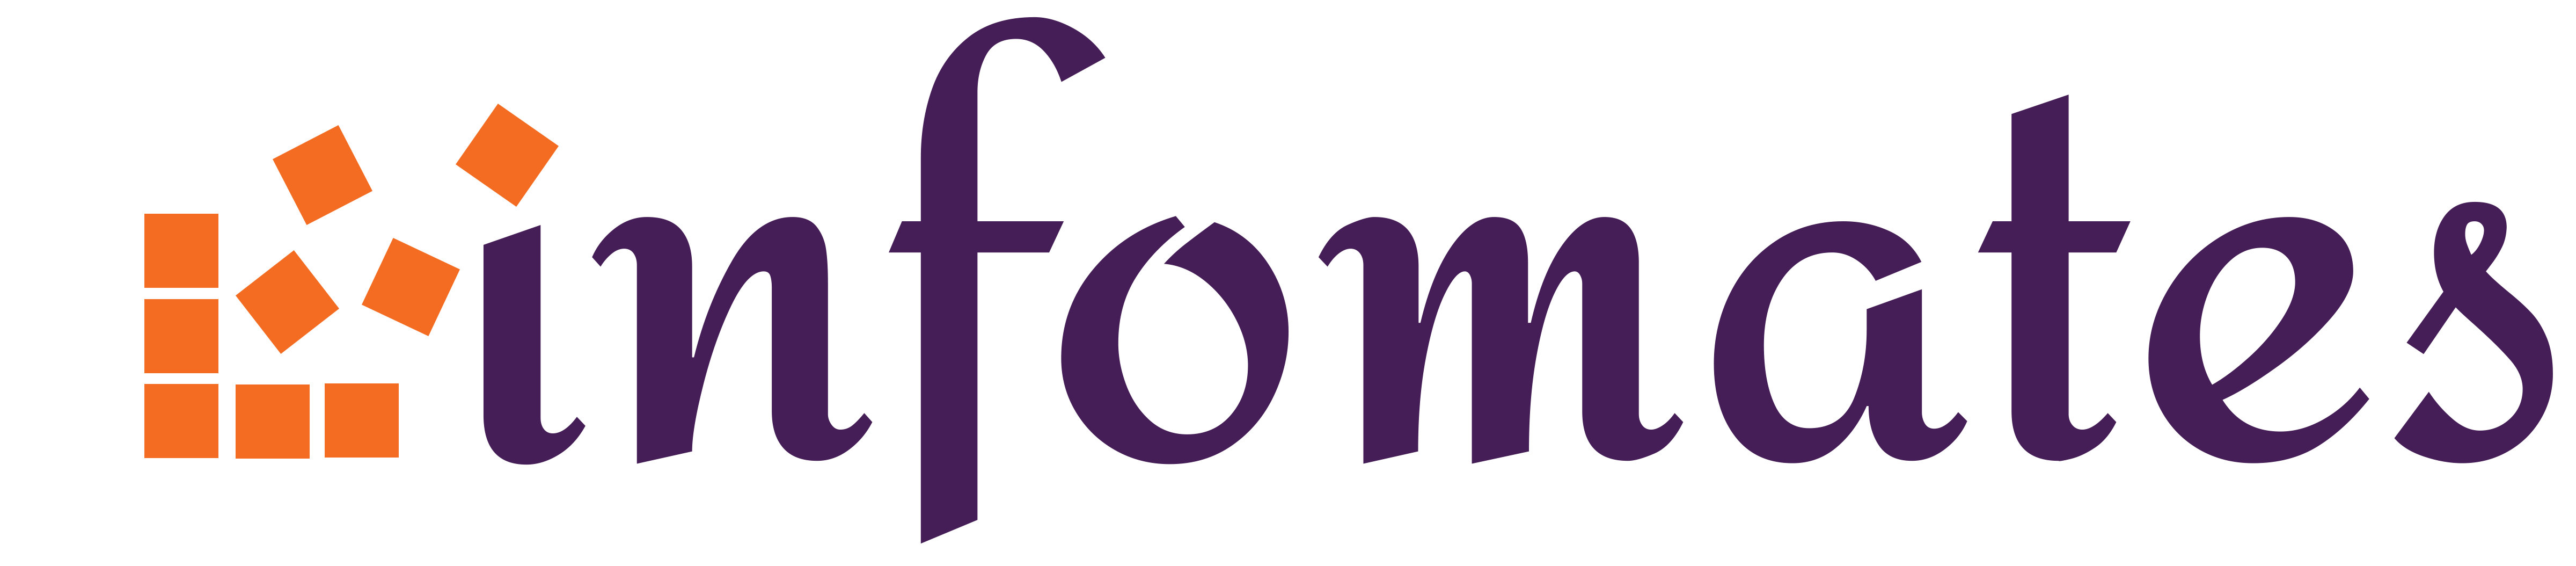 logo-transparent-color